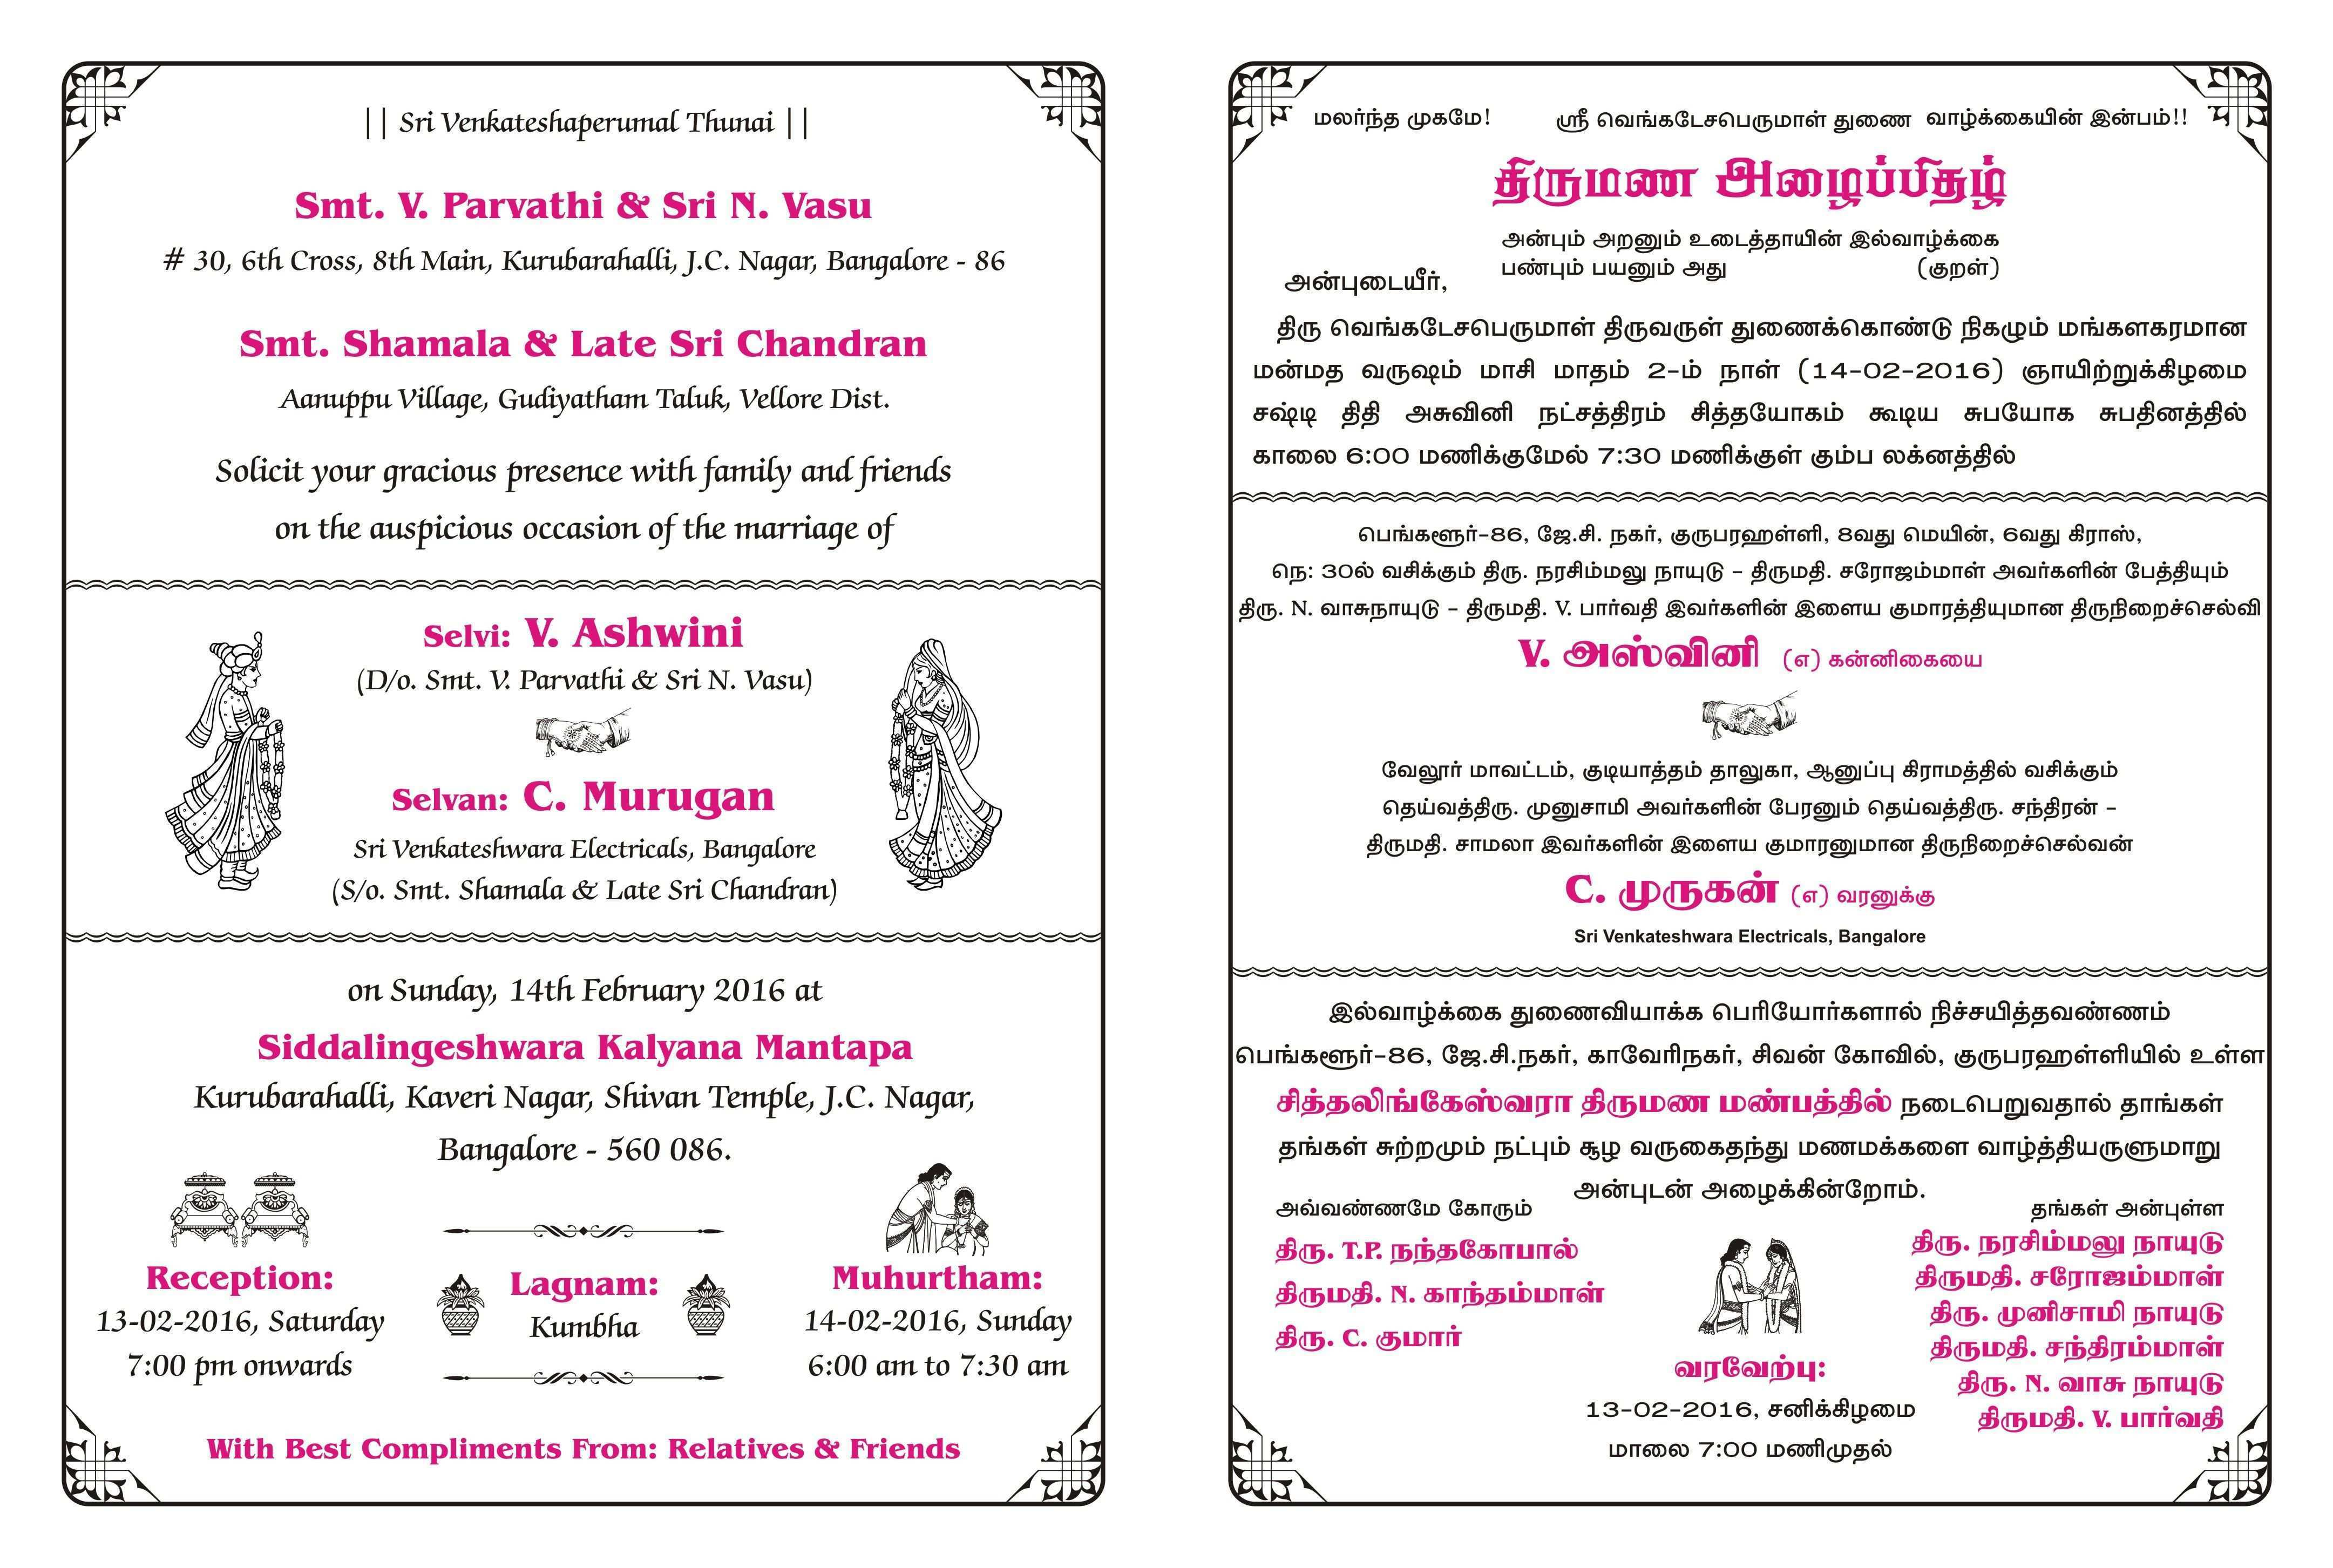 55 Printable Invitation Card Format Tamil in Word for Invitation Card Format Tamil